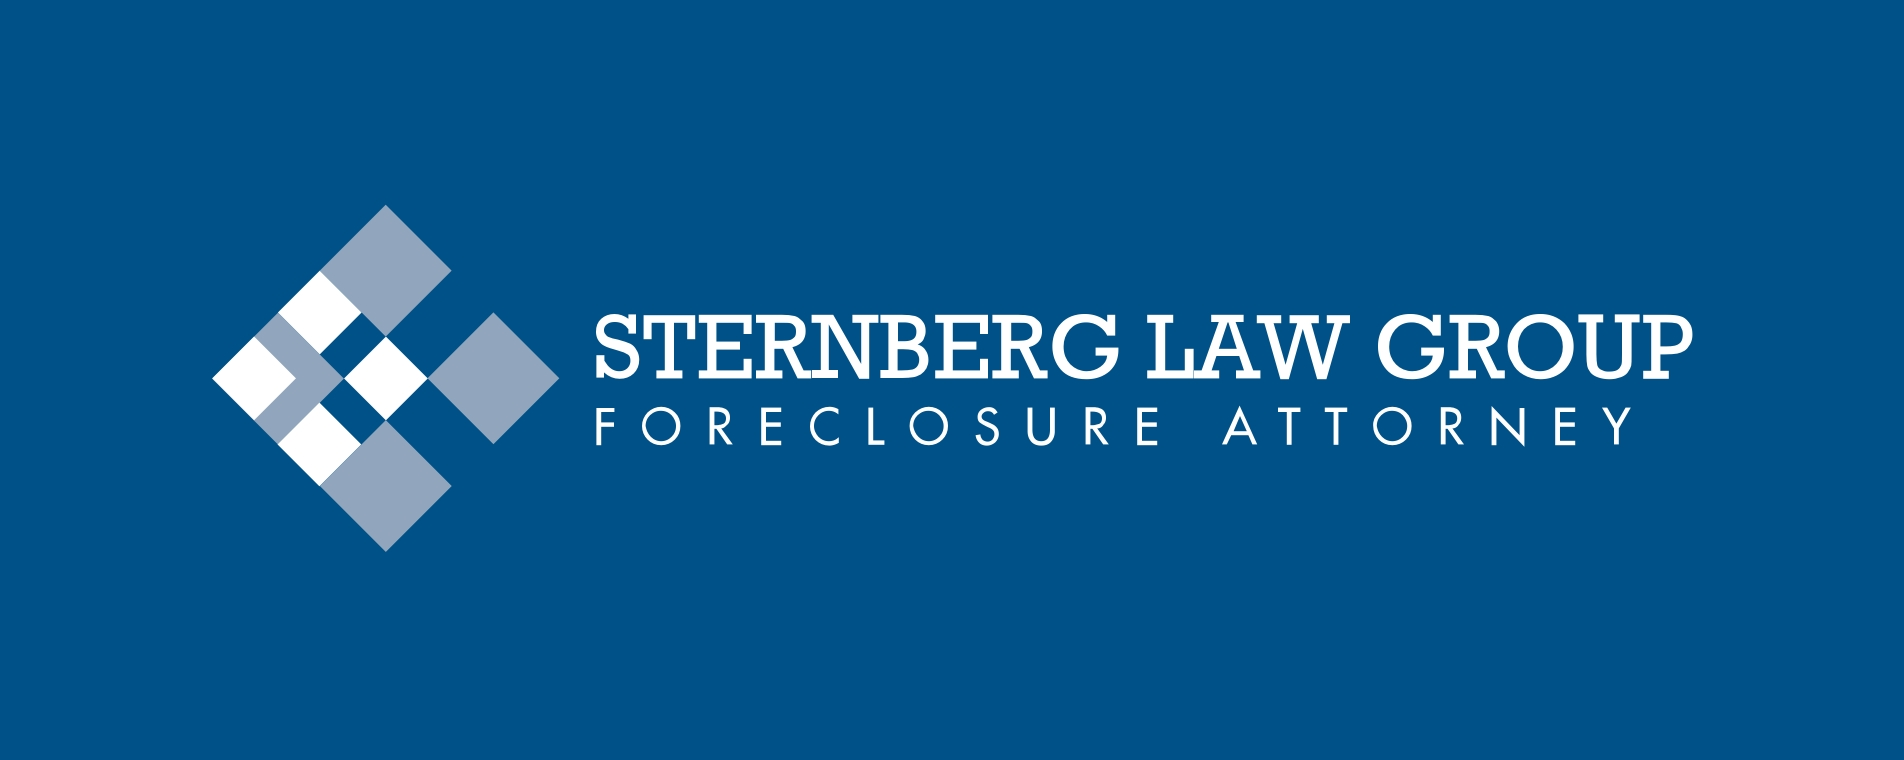 Sternberg Law Group Foreclosure Attorney